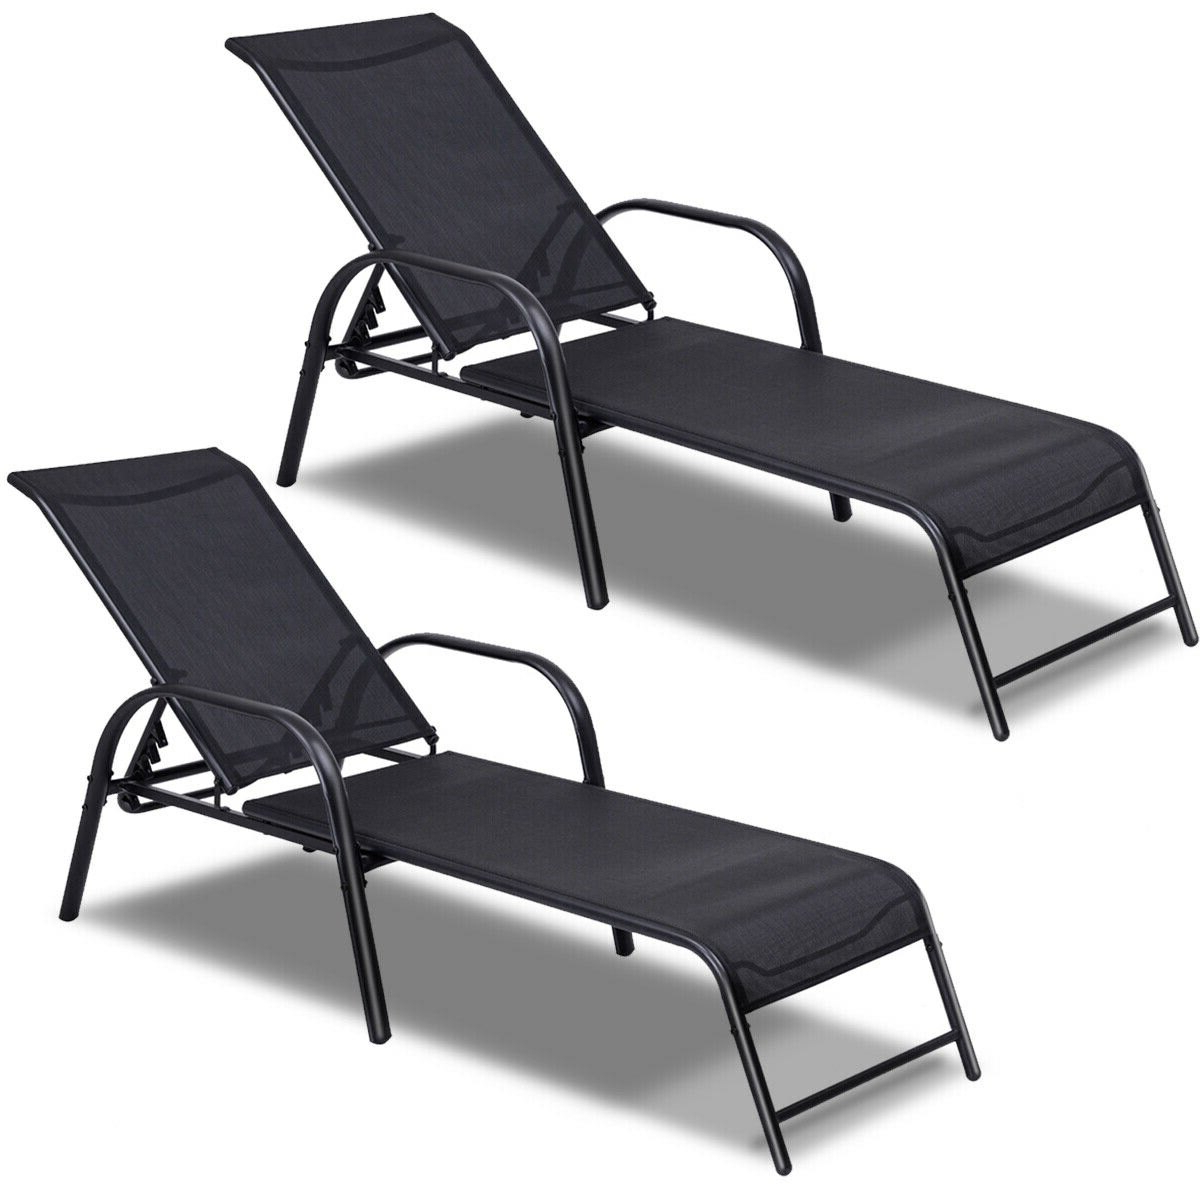 Adjustable Sling Fabric Patio Chaise Lounges For Latest Costway Set Of 2 Patio Lounge Chairs Sling Chaise Lounges Recliner Adjustable Back (View 4 of 25)